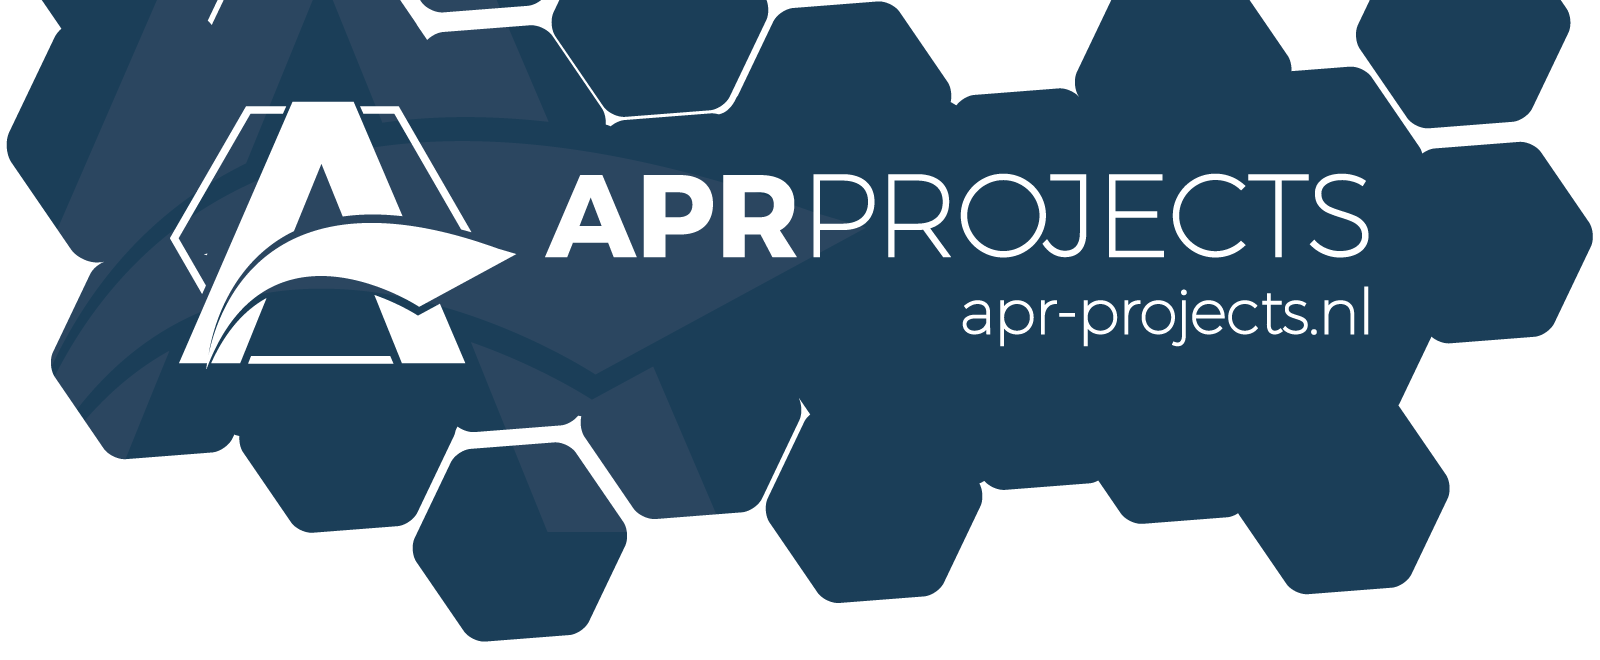 APR-PROJECTS